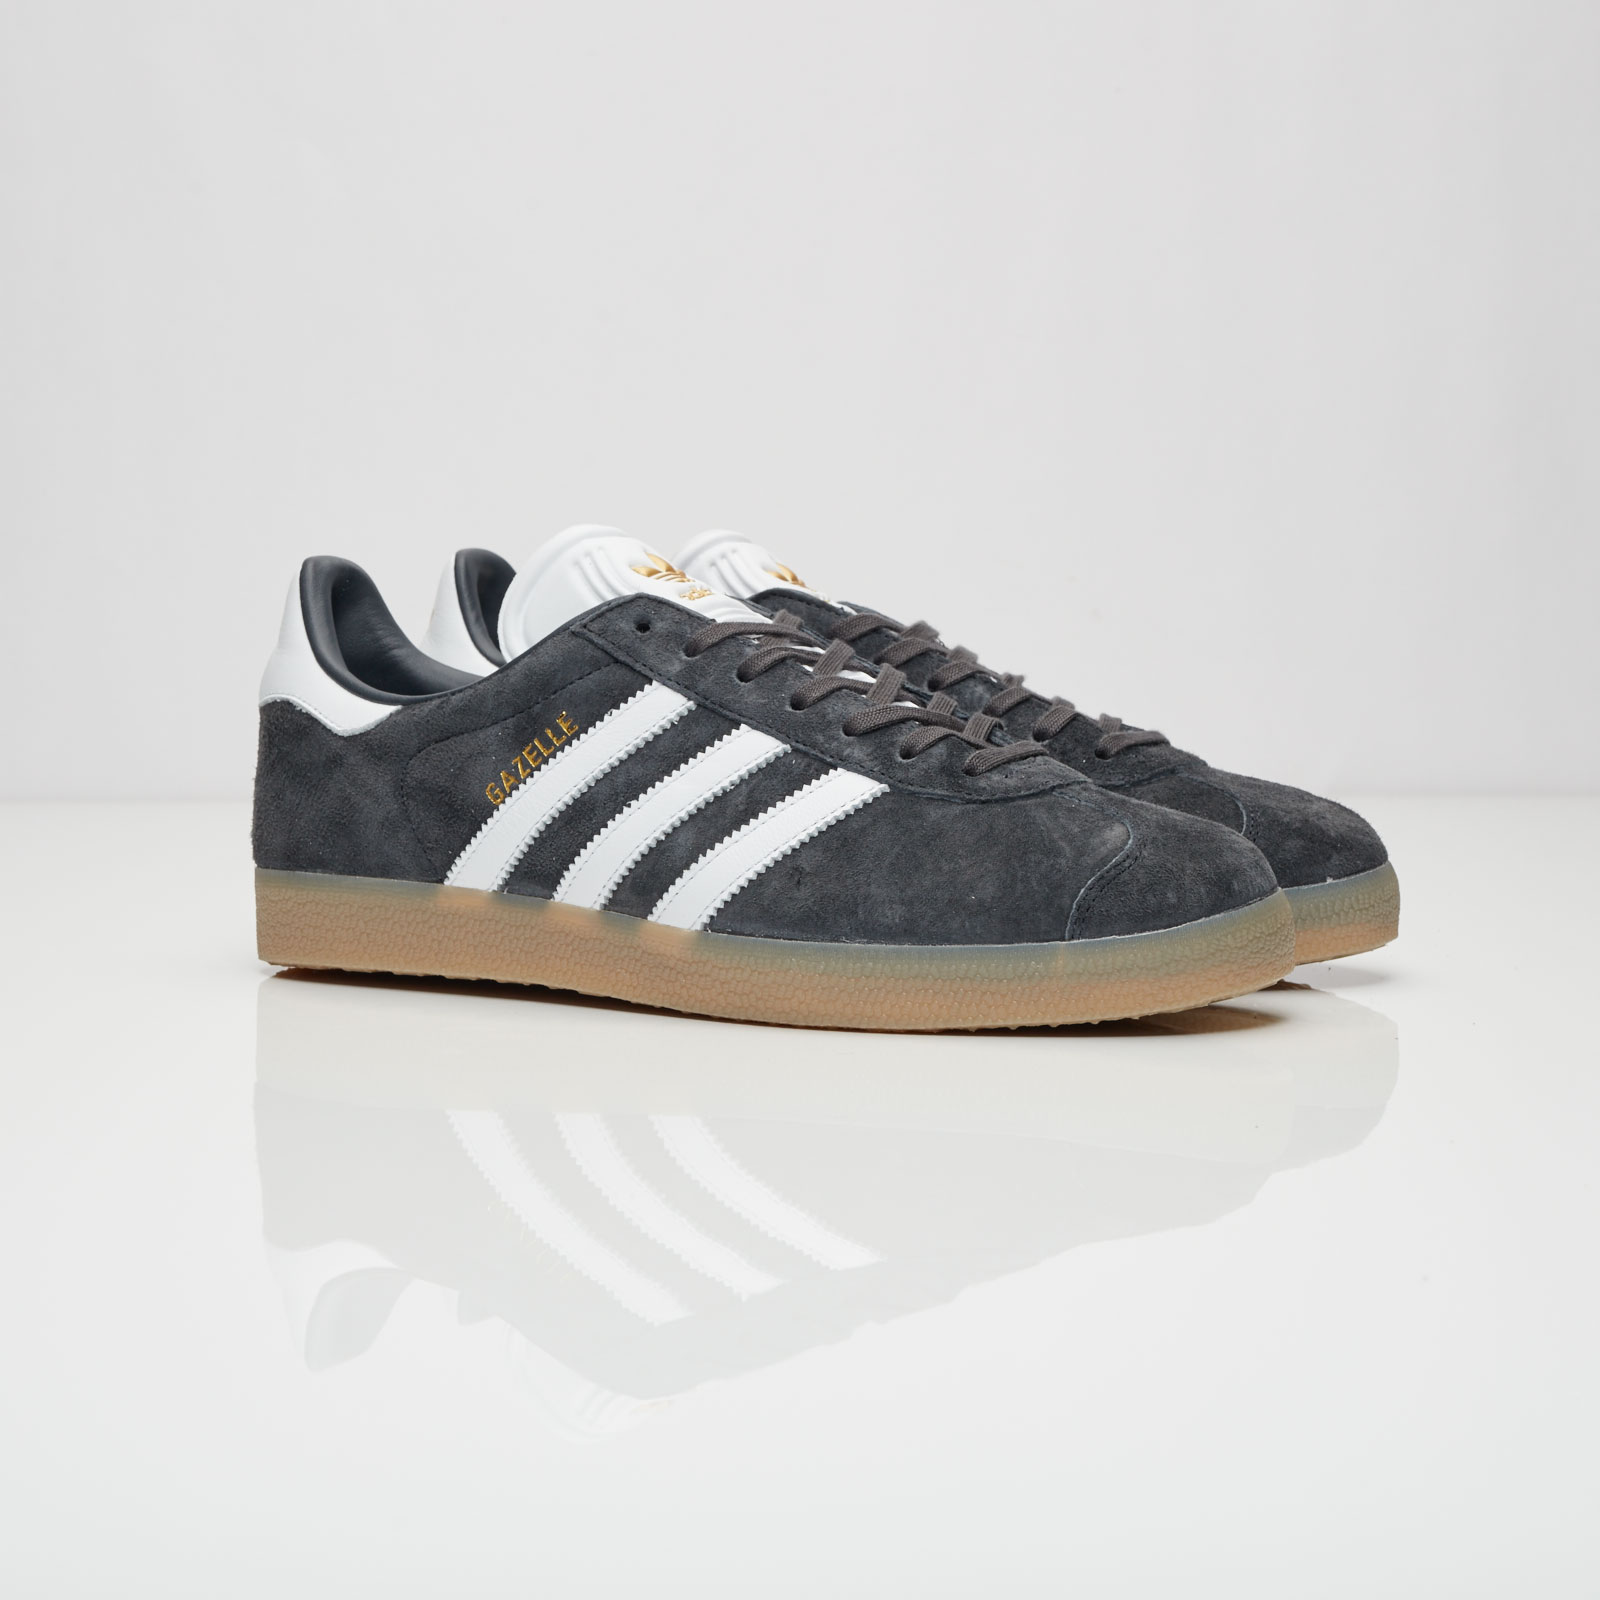 huge selection of 0285a 7e889 adidas Gazelle - Bb5506 - Sneakersnstuff  sneakers  streetwe